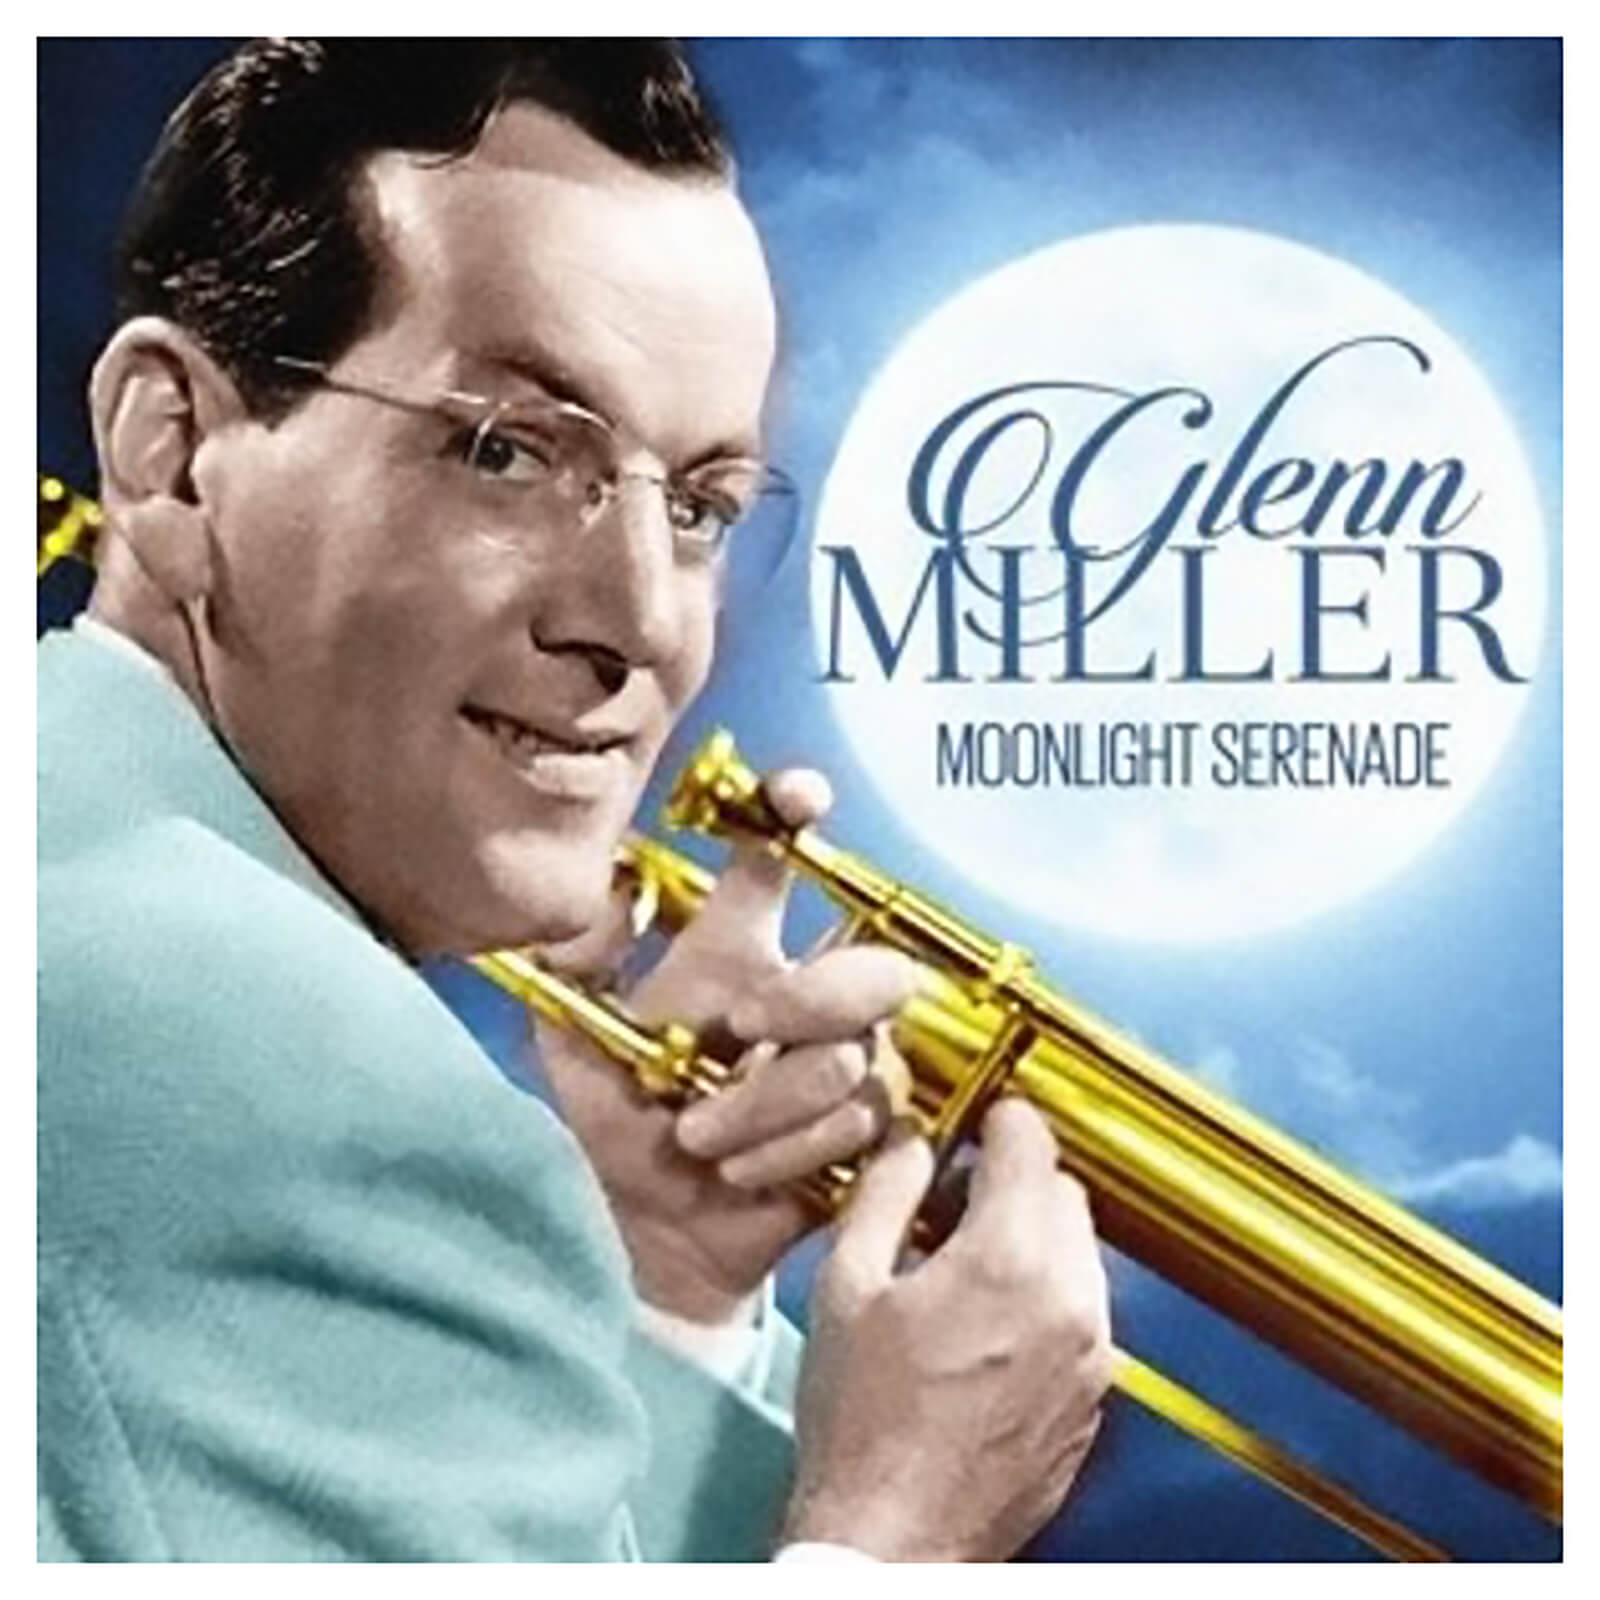 Glen Miller - Moonlight Serenade - Vinyl